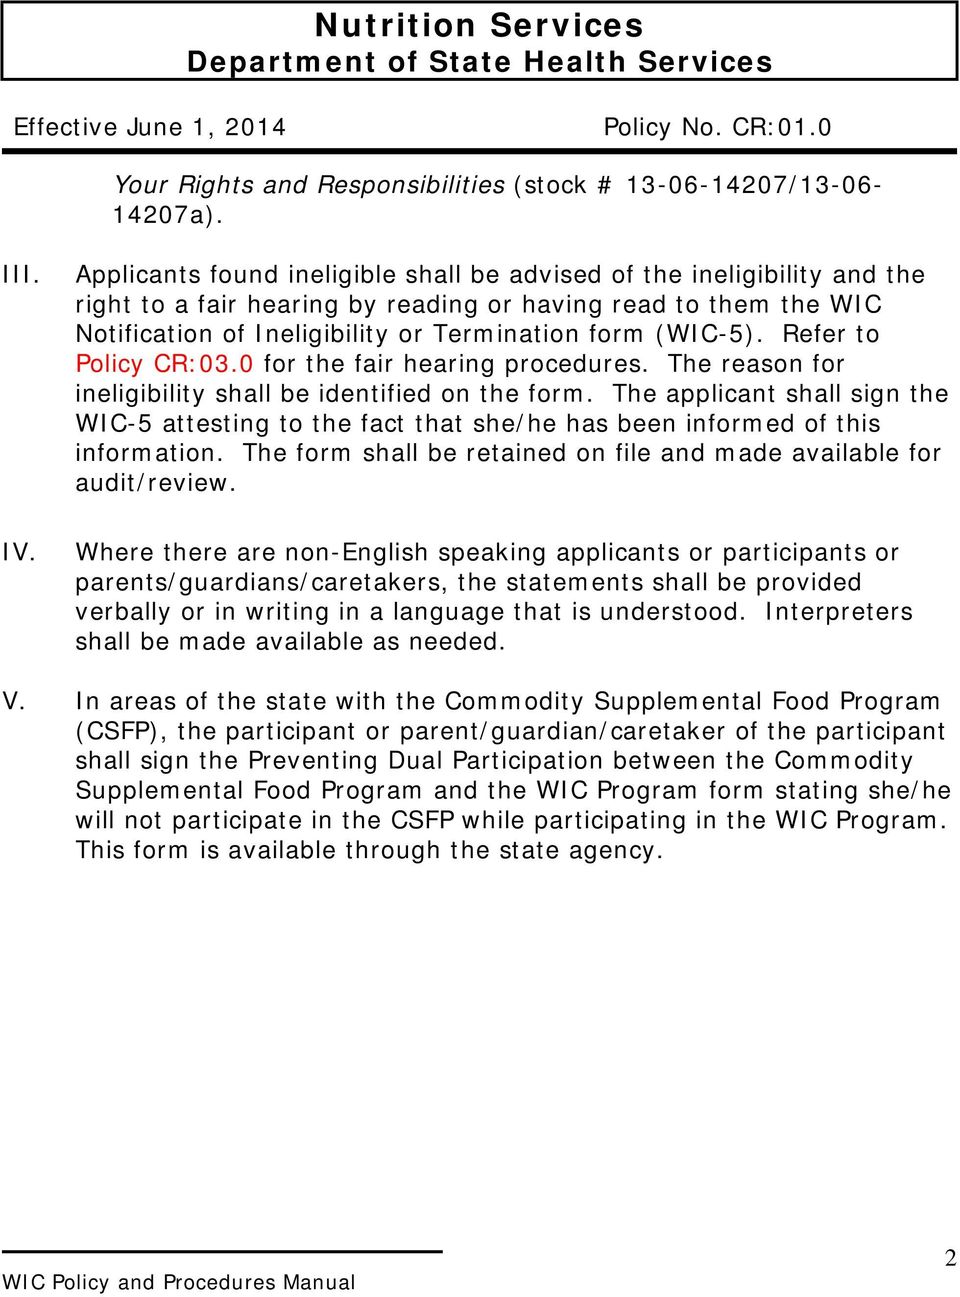 Refer to Policy CR:03.0 for the fair hearing procedures. The reason for ineligibility shall be identified on the form.